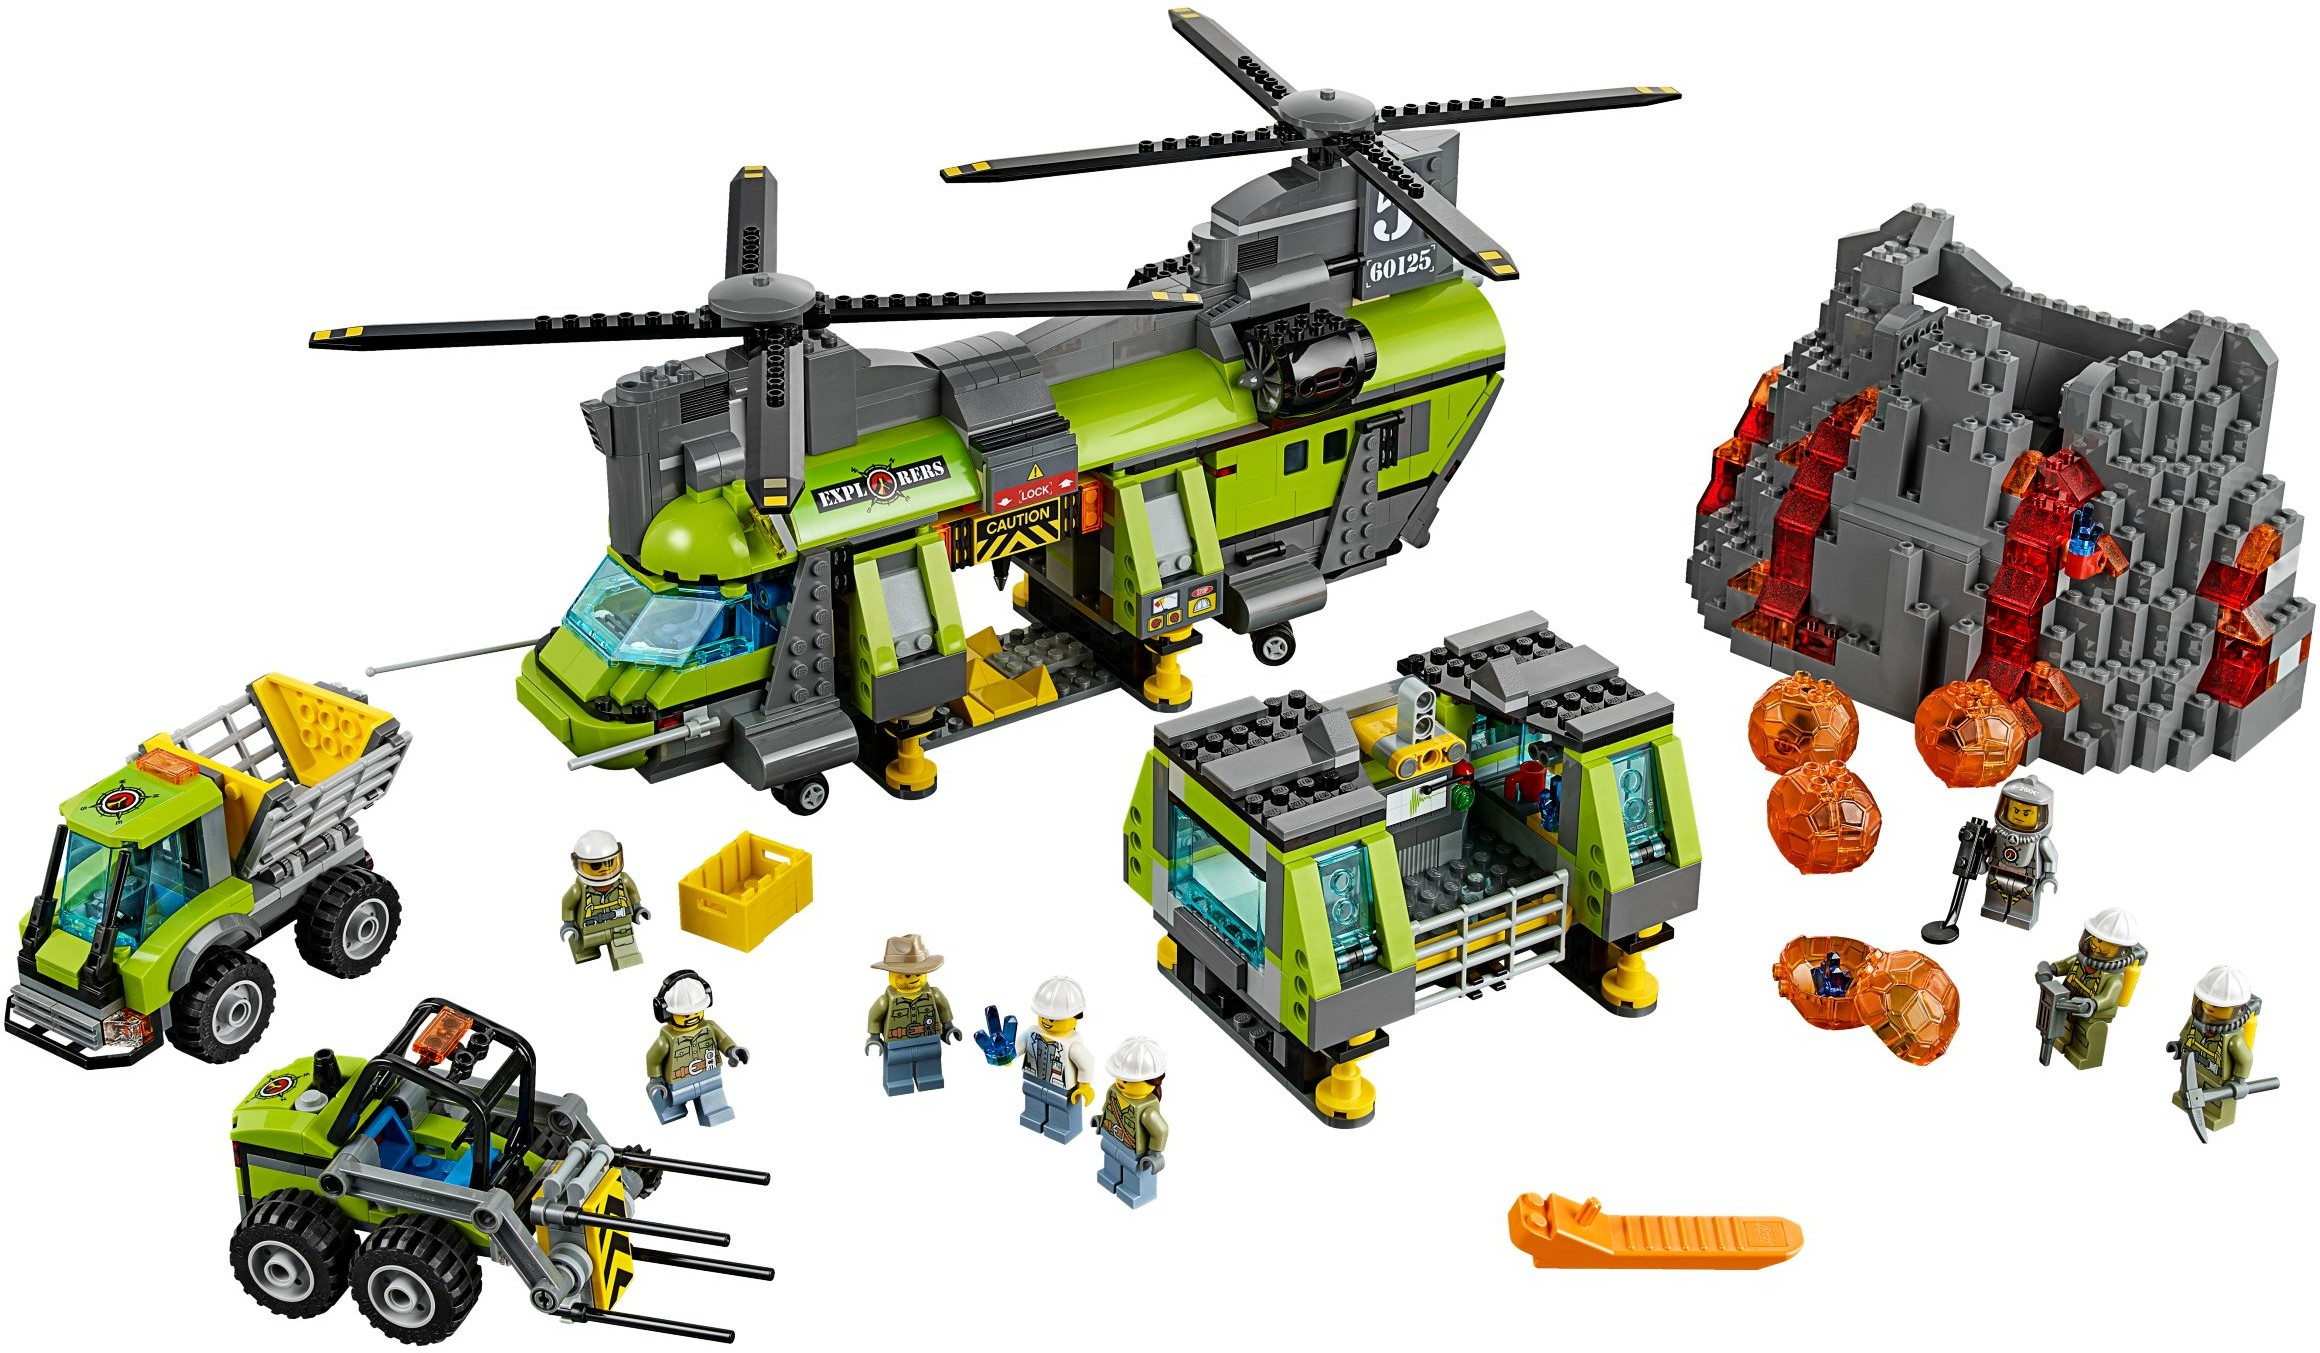 http://images.brickset.com/sets/large/60125-1.jpg?201605200842